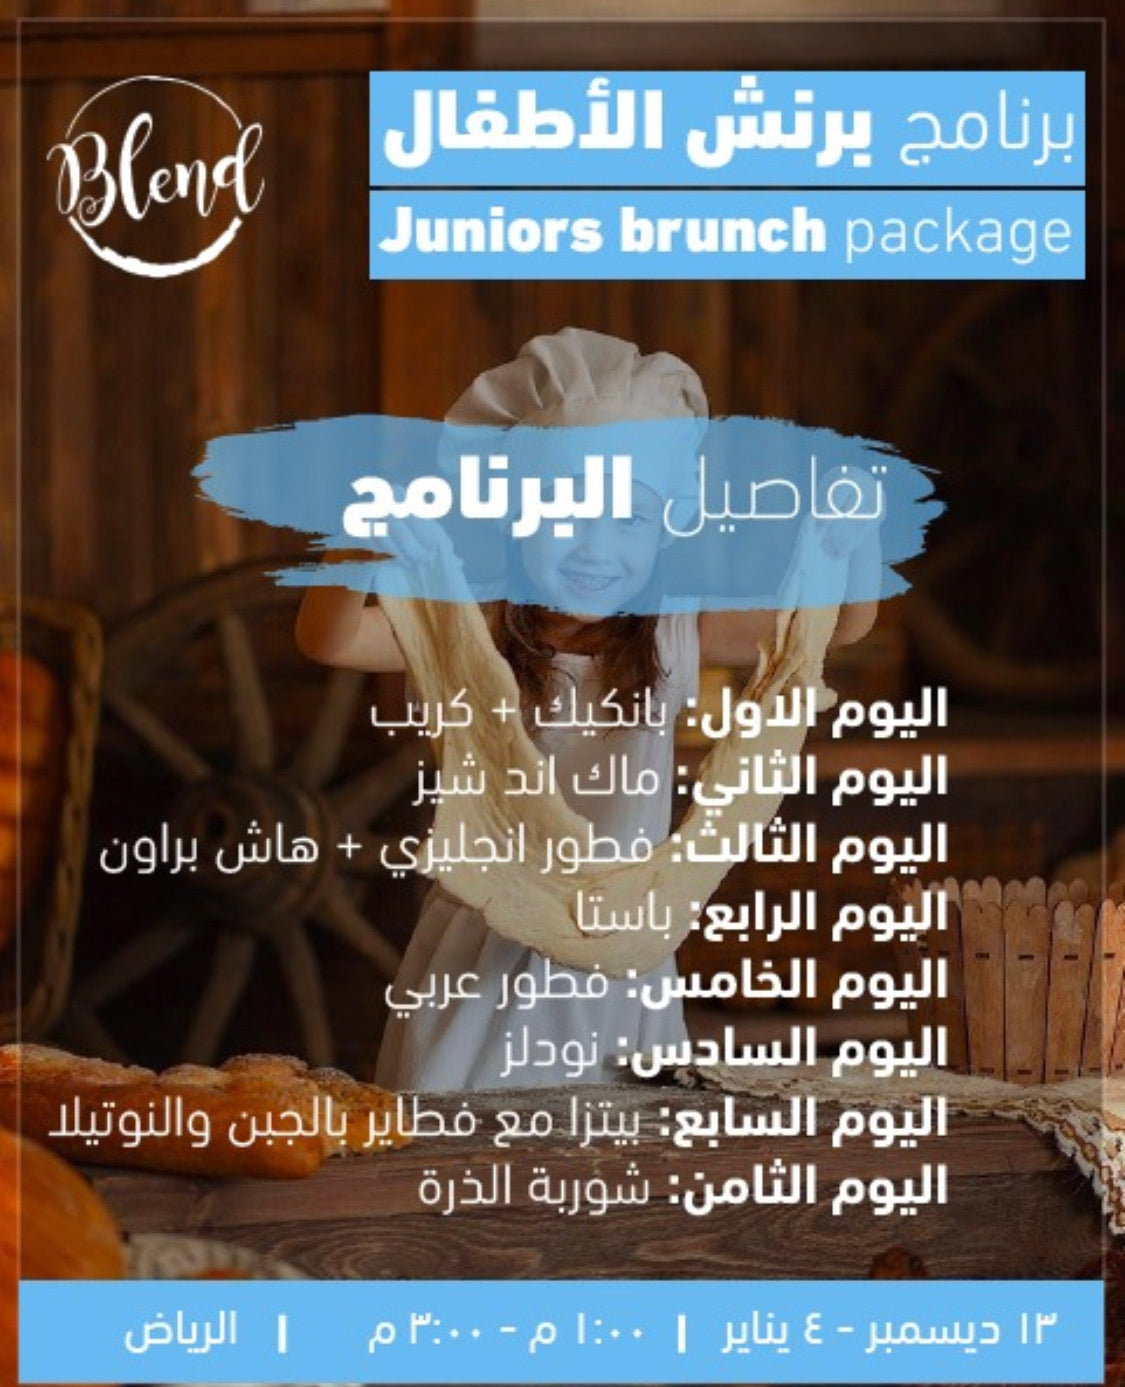 Juniors Brunch Package (13 Dec 2019 to 4 Jan 2020)